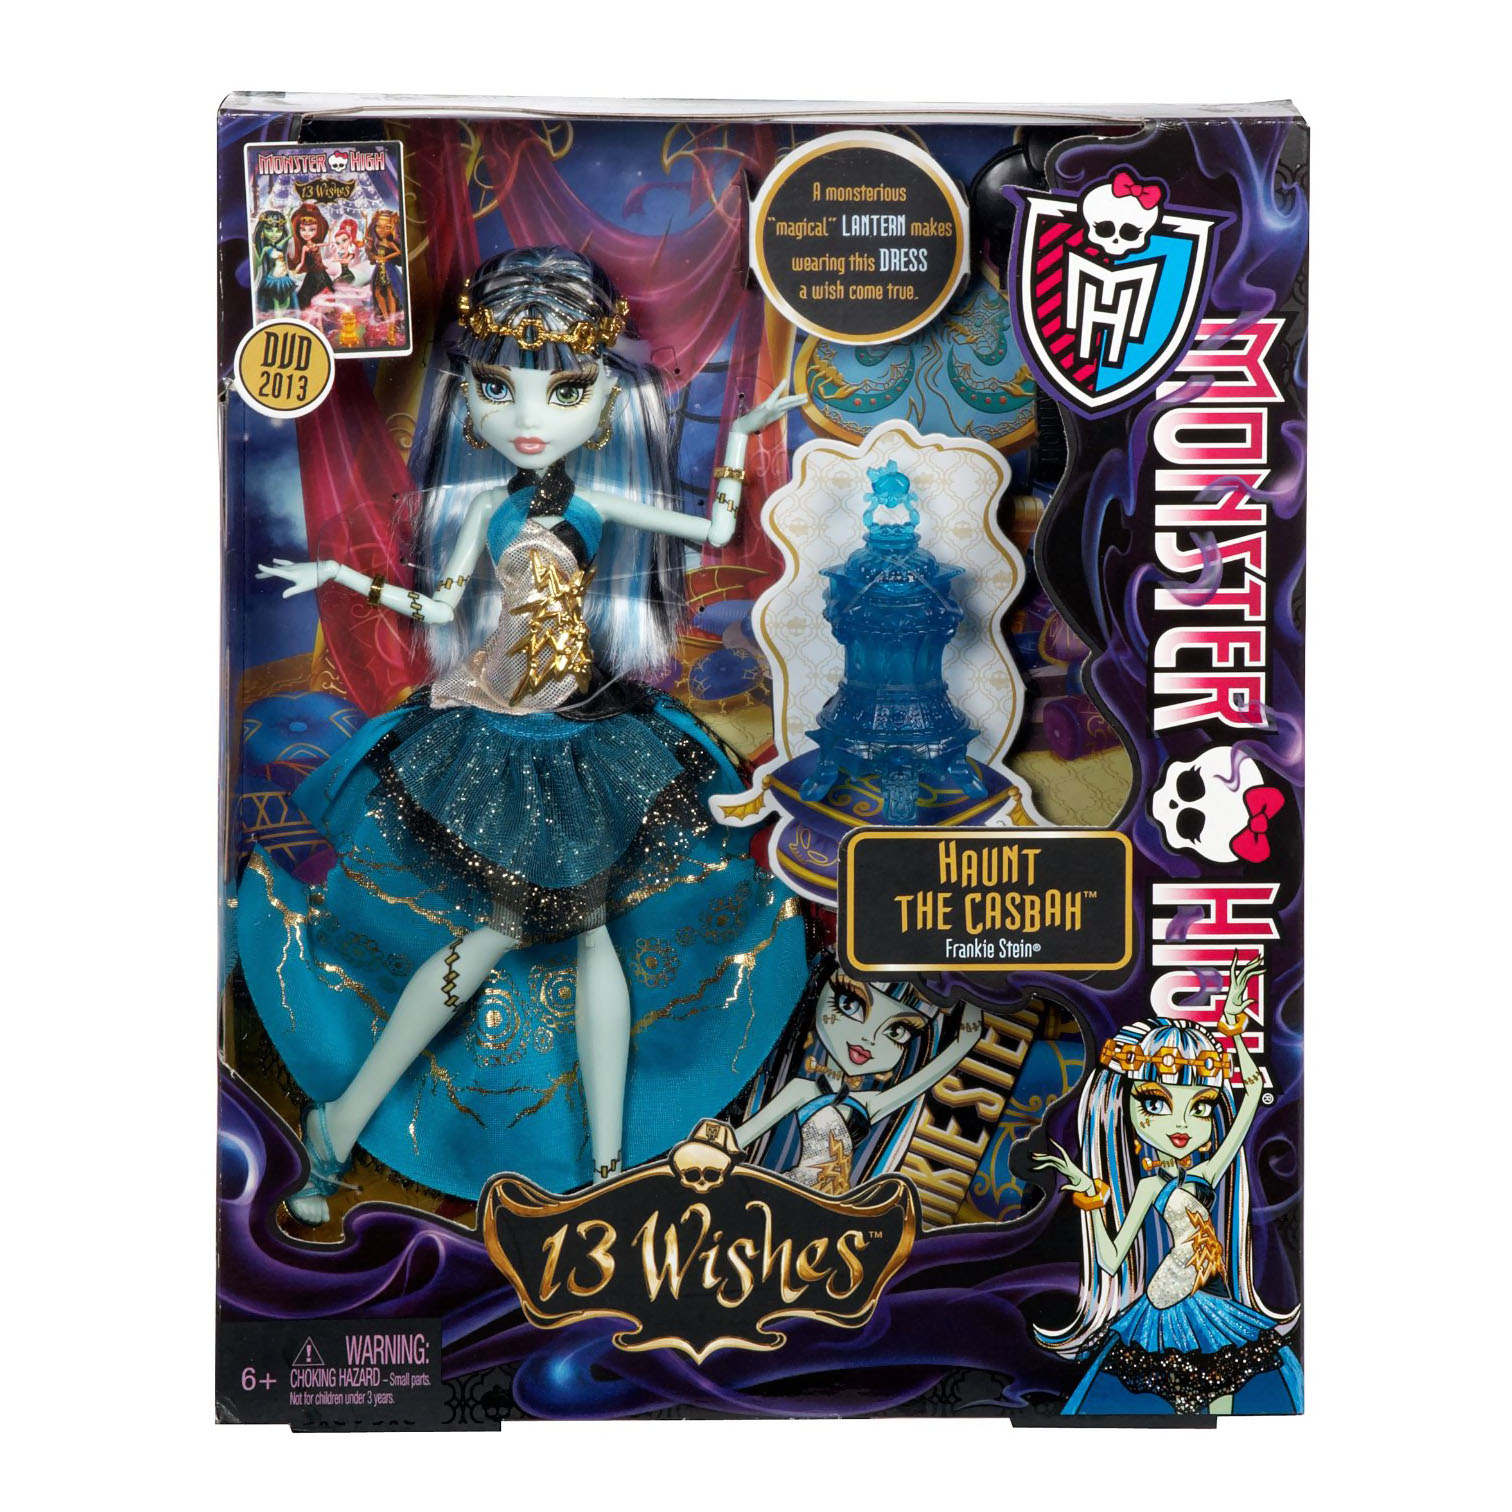 ����� Monster High ����� ����� ������������ ��������� 13 ������� Frankie Stein